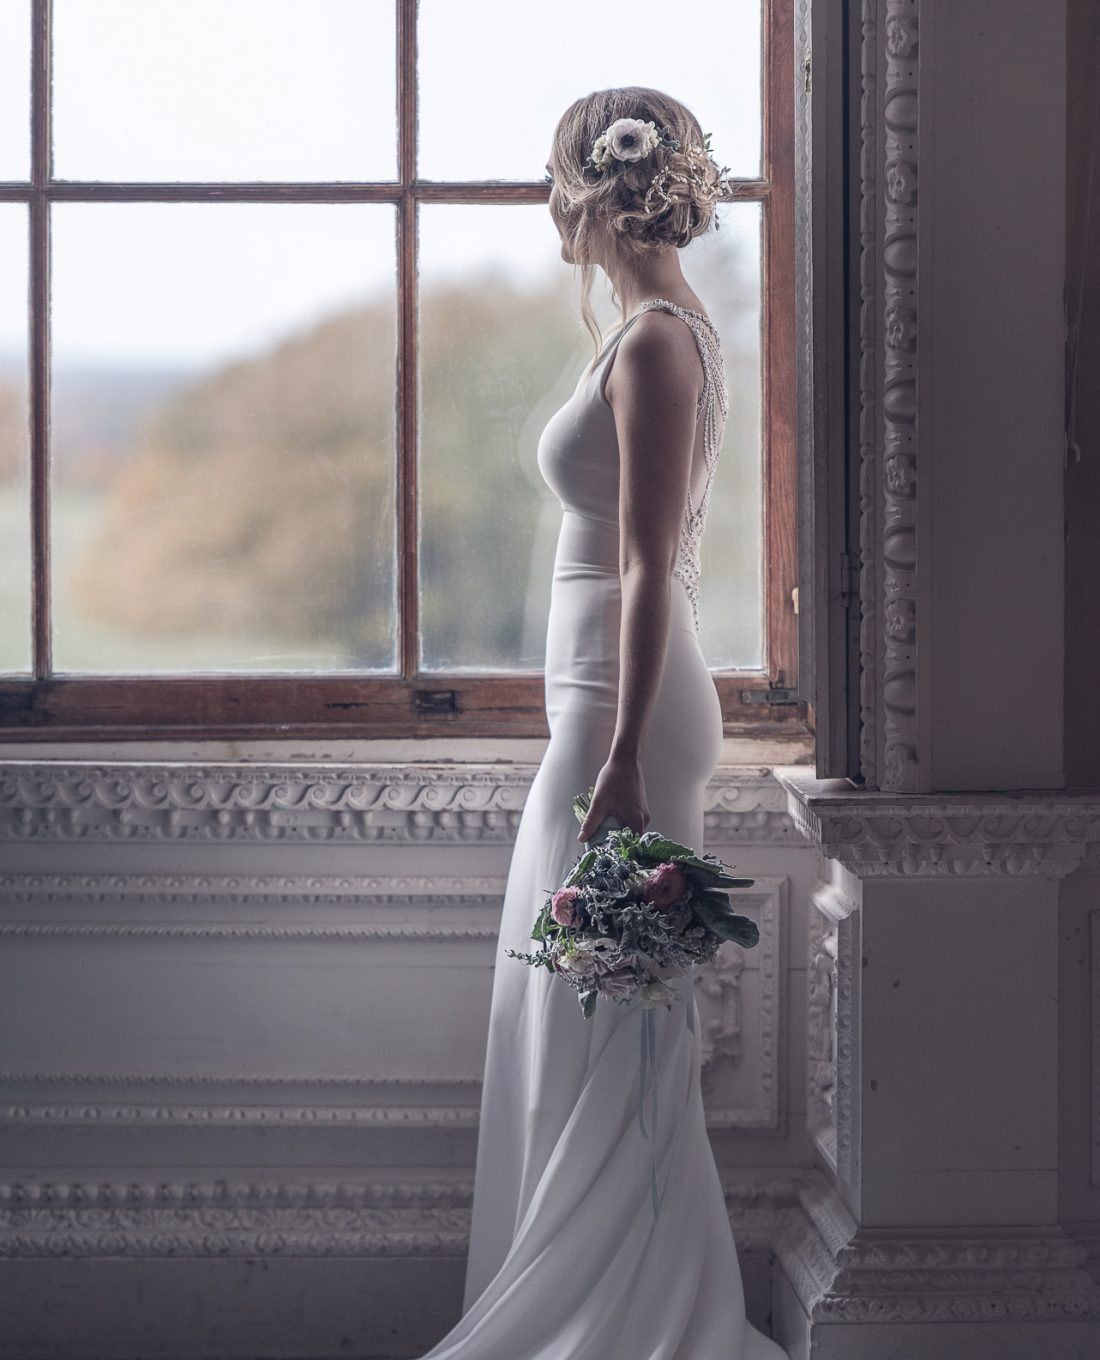 Wedding Photography featuring bride in ornate room of National Trust Claydon House